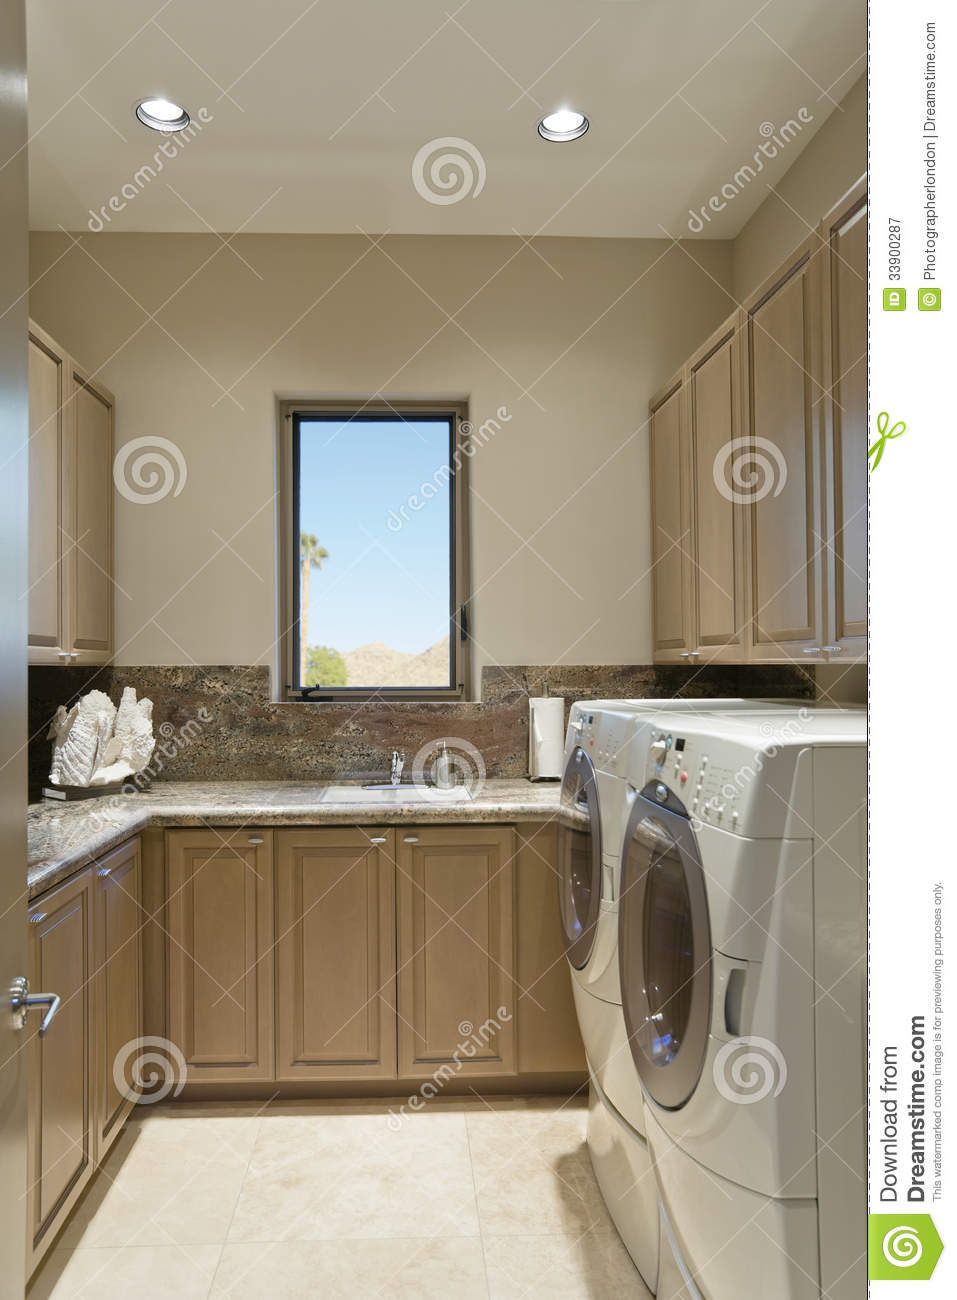 Cabinets And Washing Machine In Laundry Room Stock Image